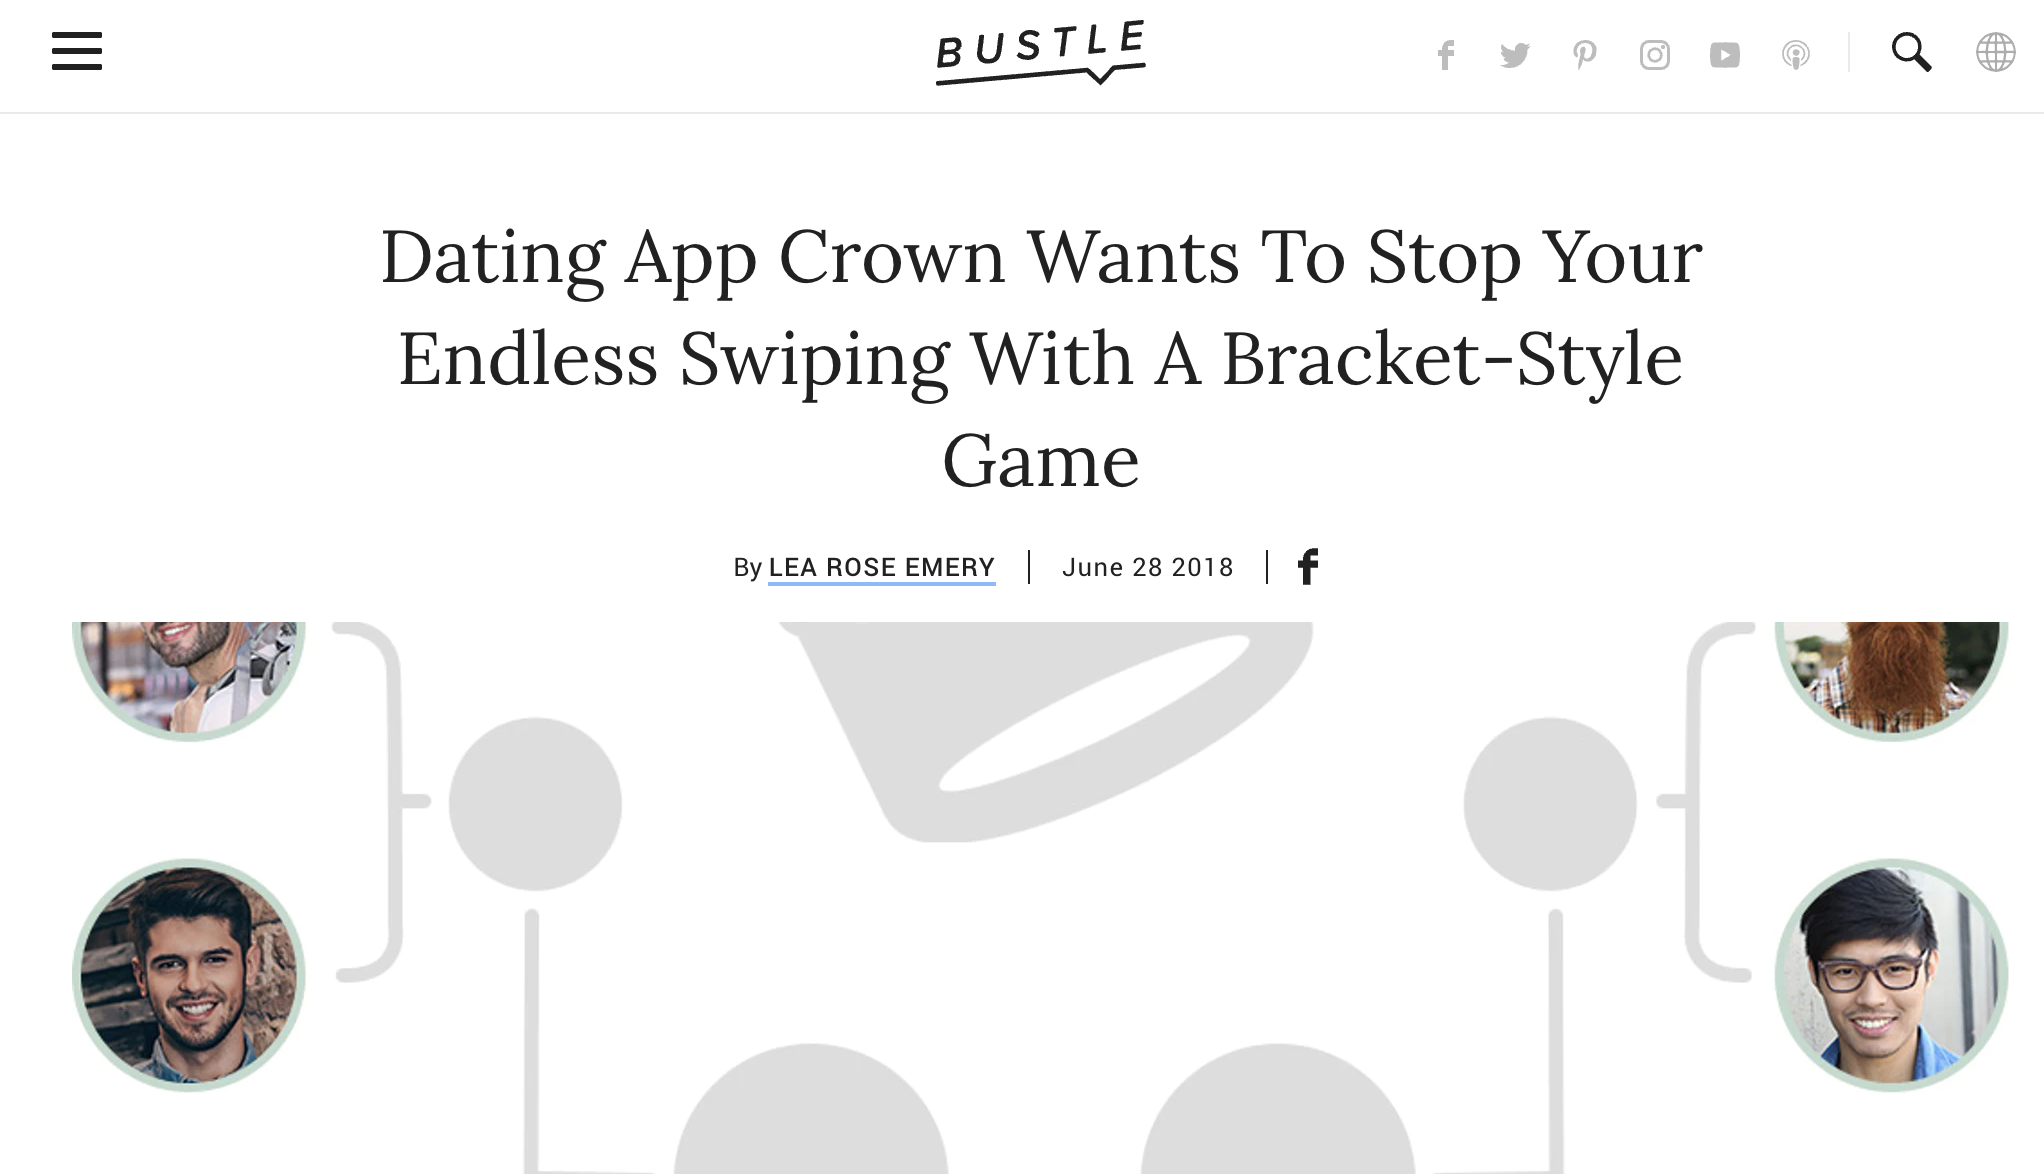 Bustle - Dating App Crown Wants To Stop Your Endless Swiping With A Bracket-Style Game